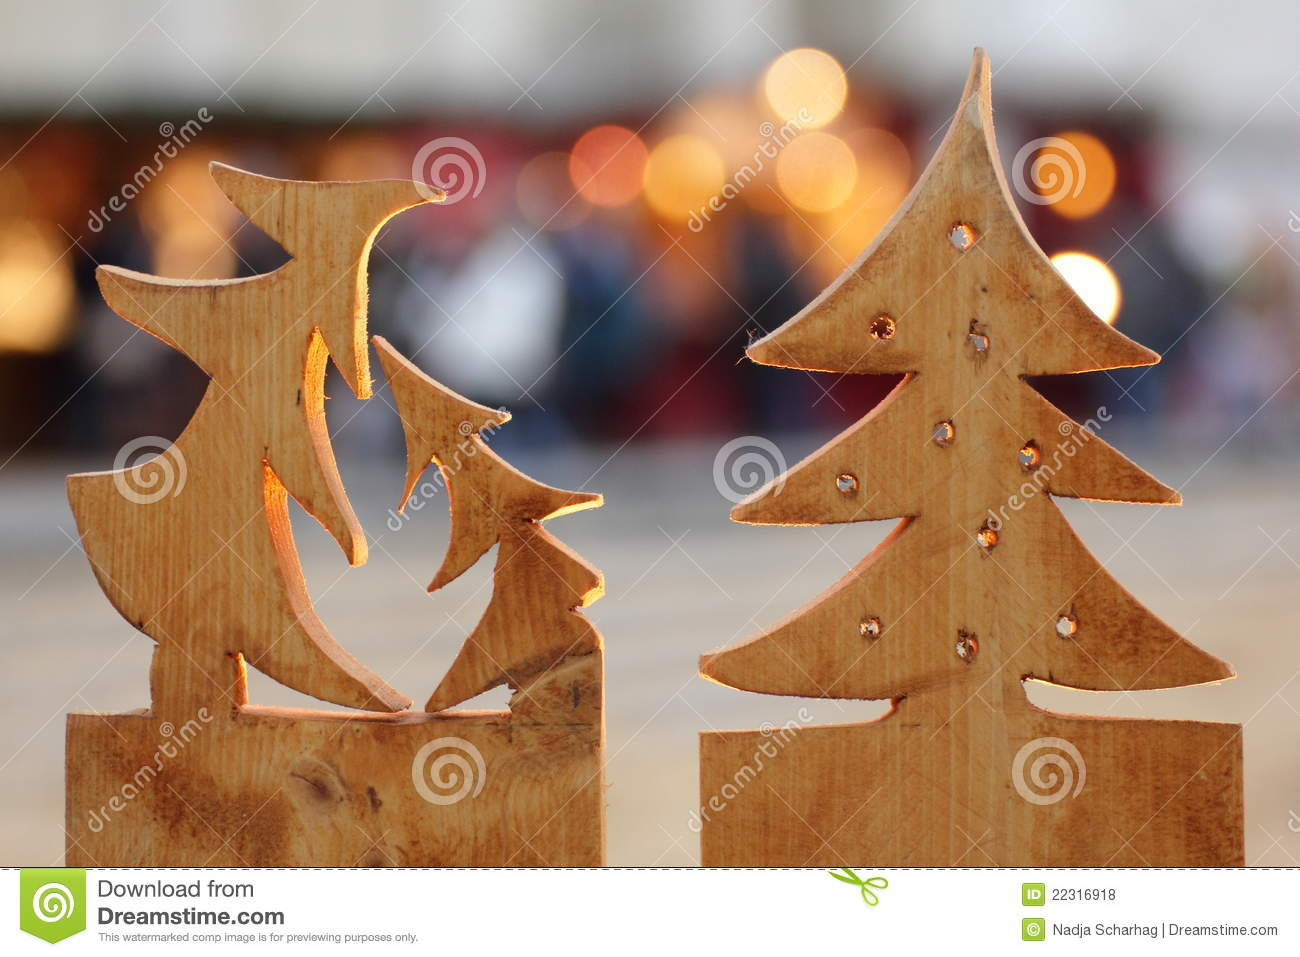 Wooden christmas trees stock photo. Image of advent, baby ...